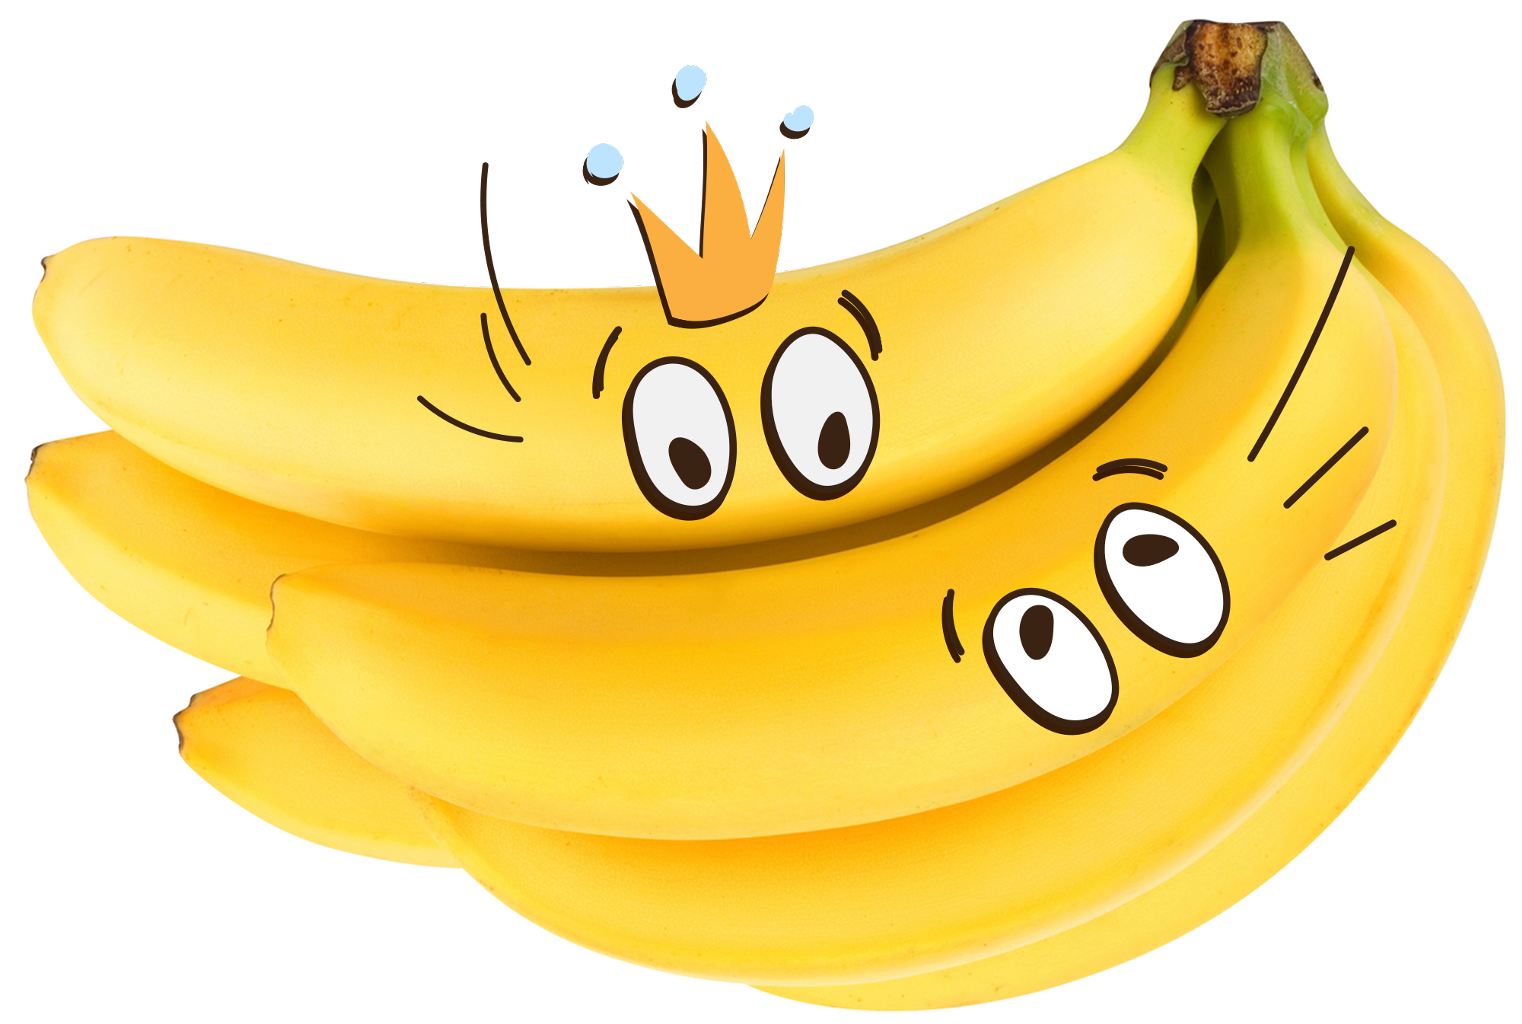 Banana smiley. Clipart transparent free for